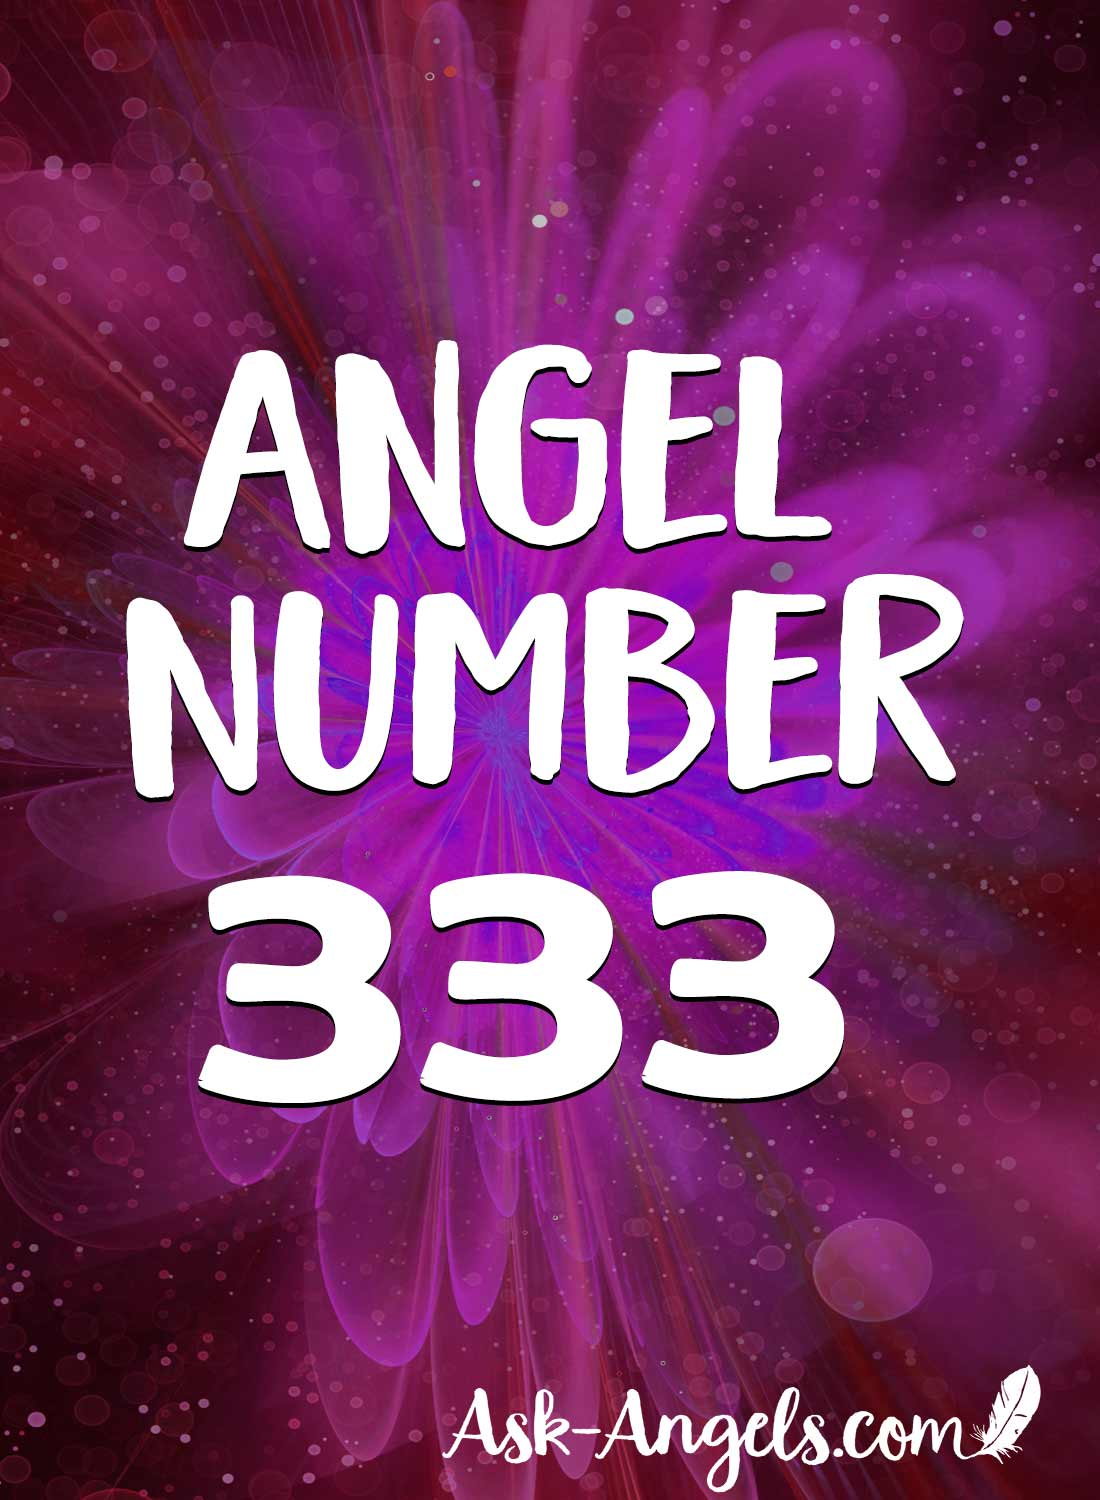 Angel Number 333